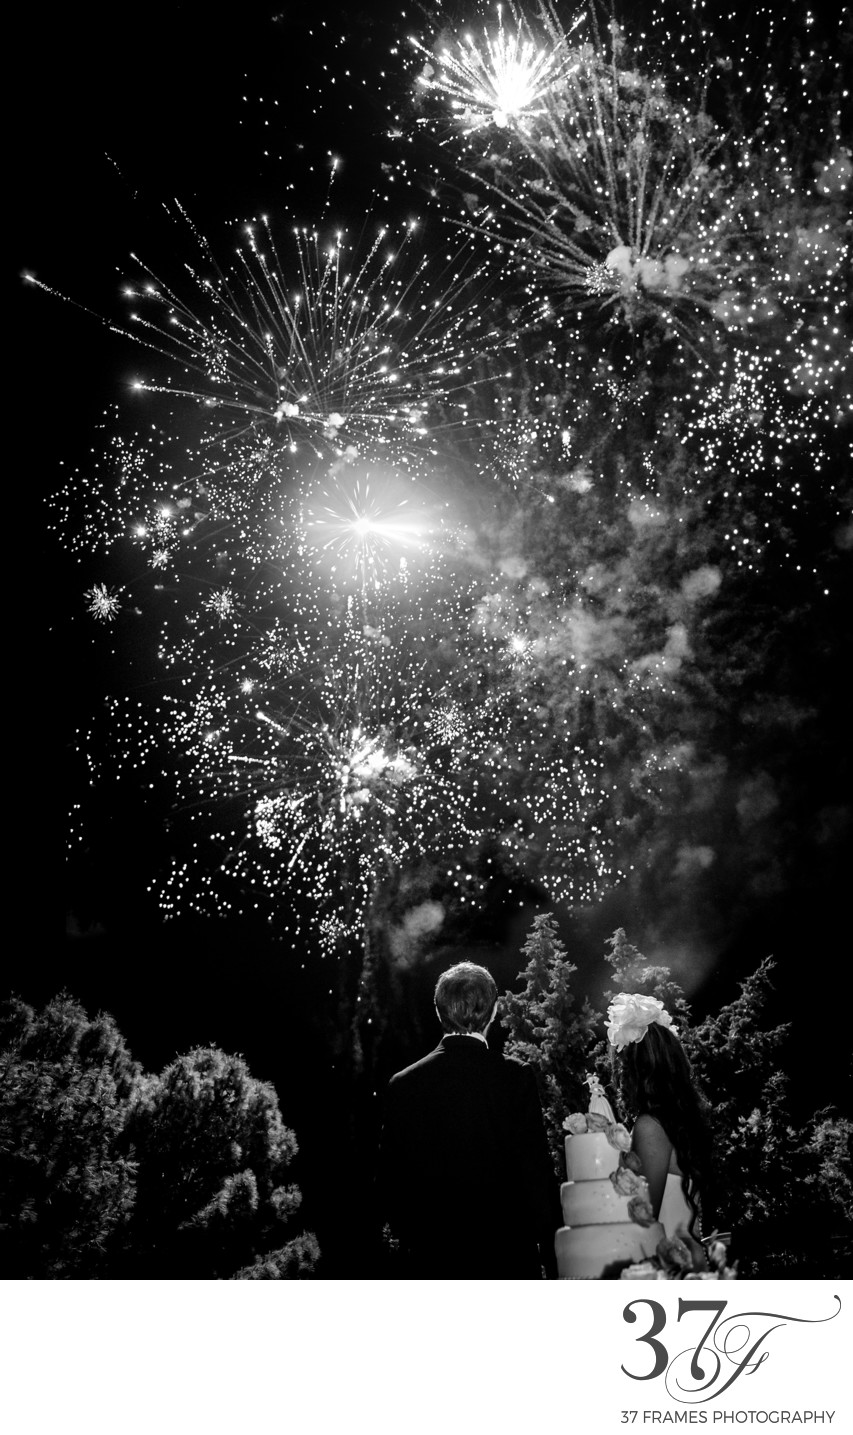 Fireworks at Armani Wedding in Italy